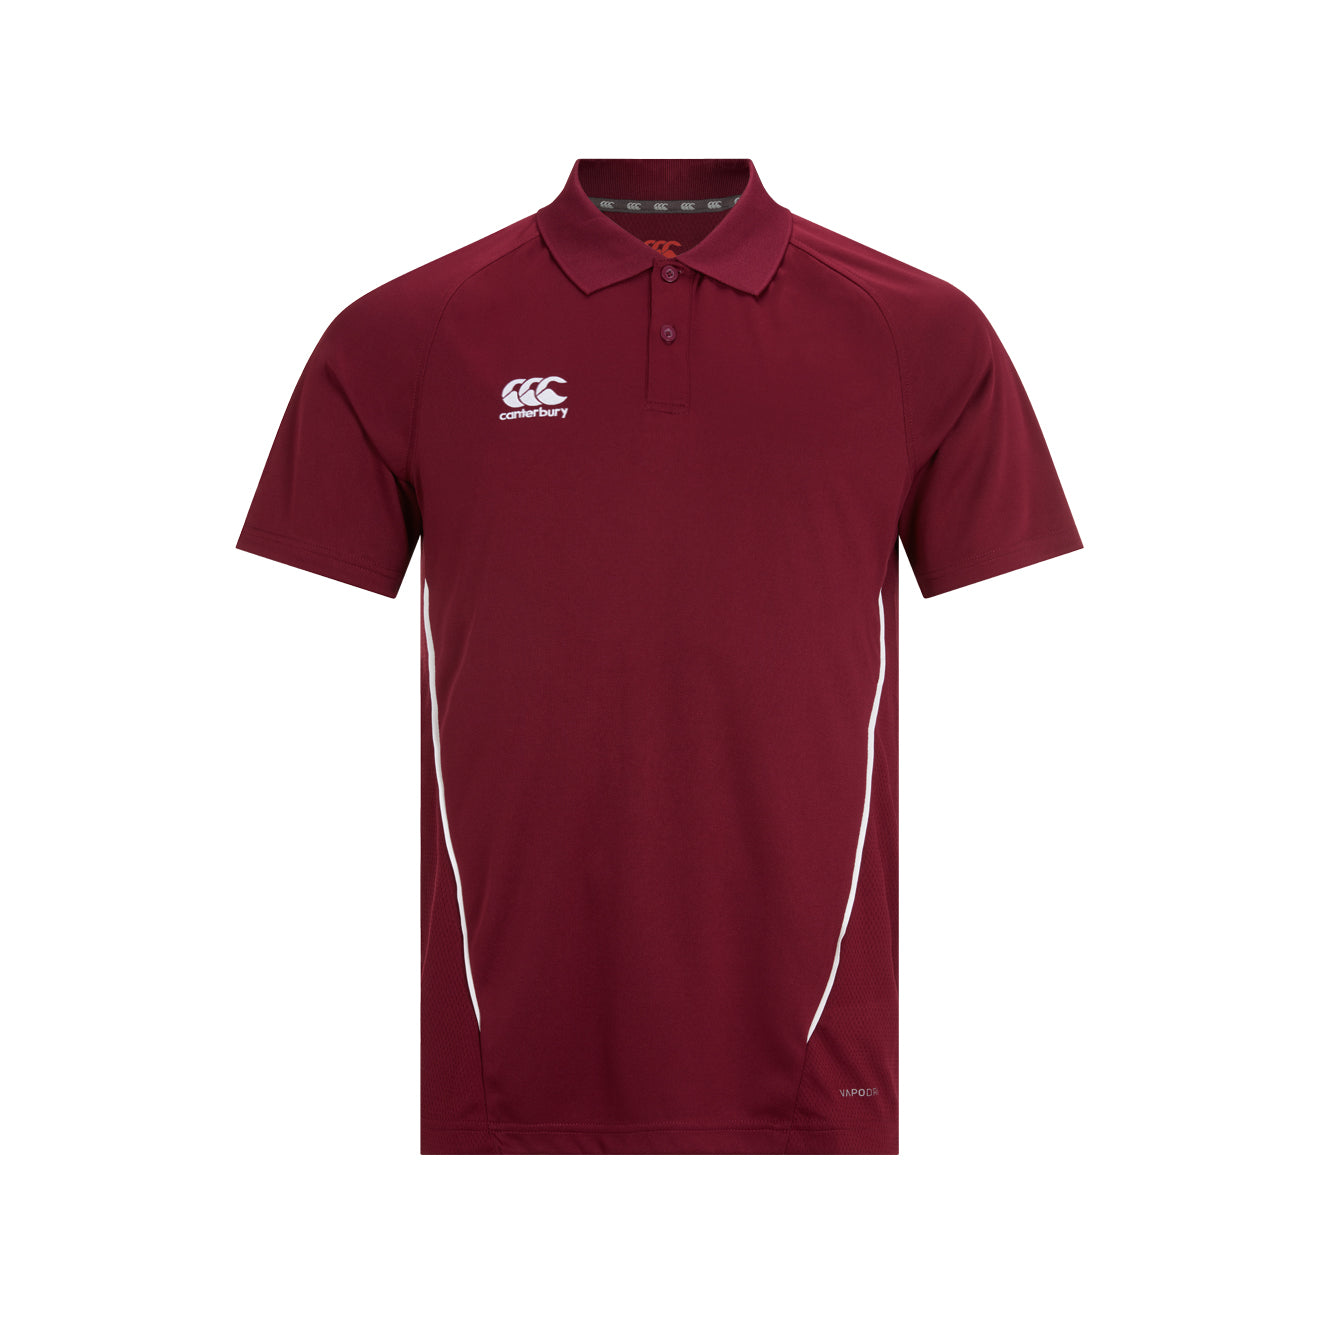 Horden & Peterlee RFC CCC Team Dry Polo